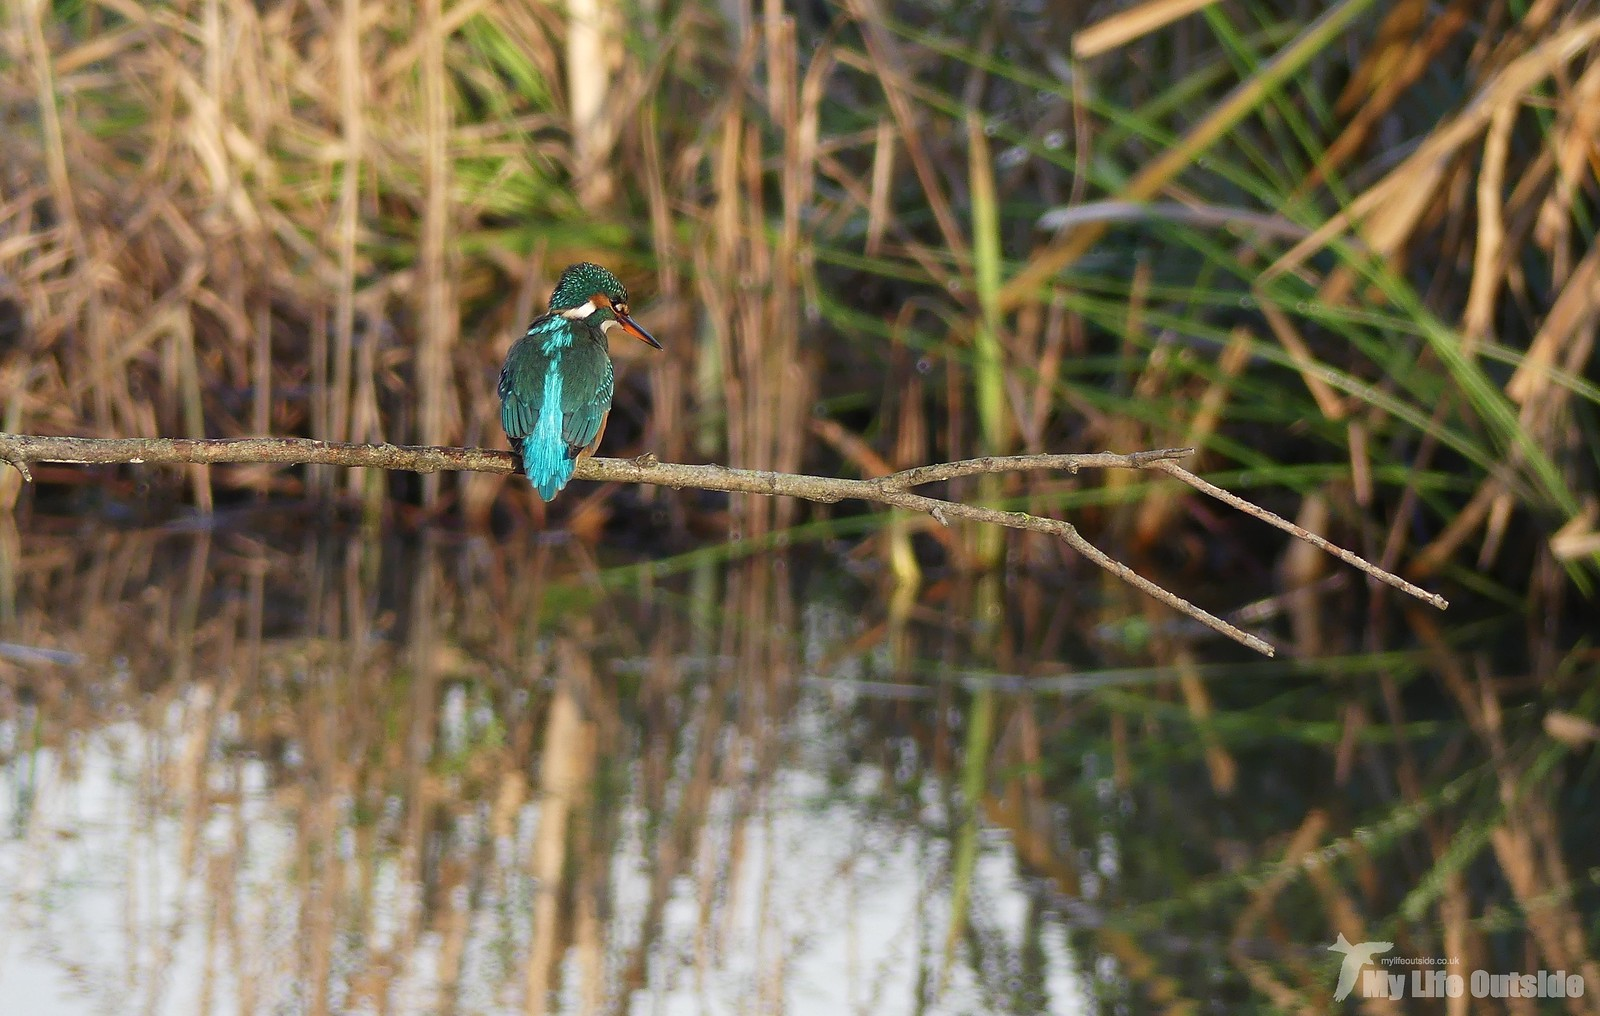 P1220641 - Kingfisher, Seaton Wetlands